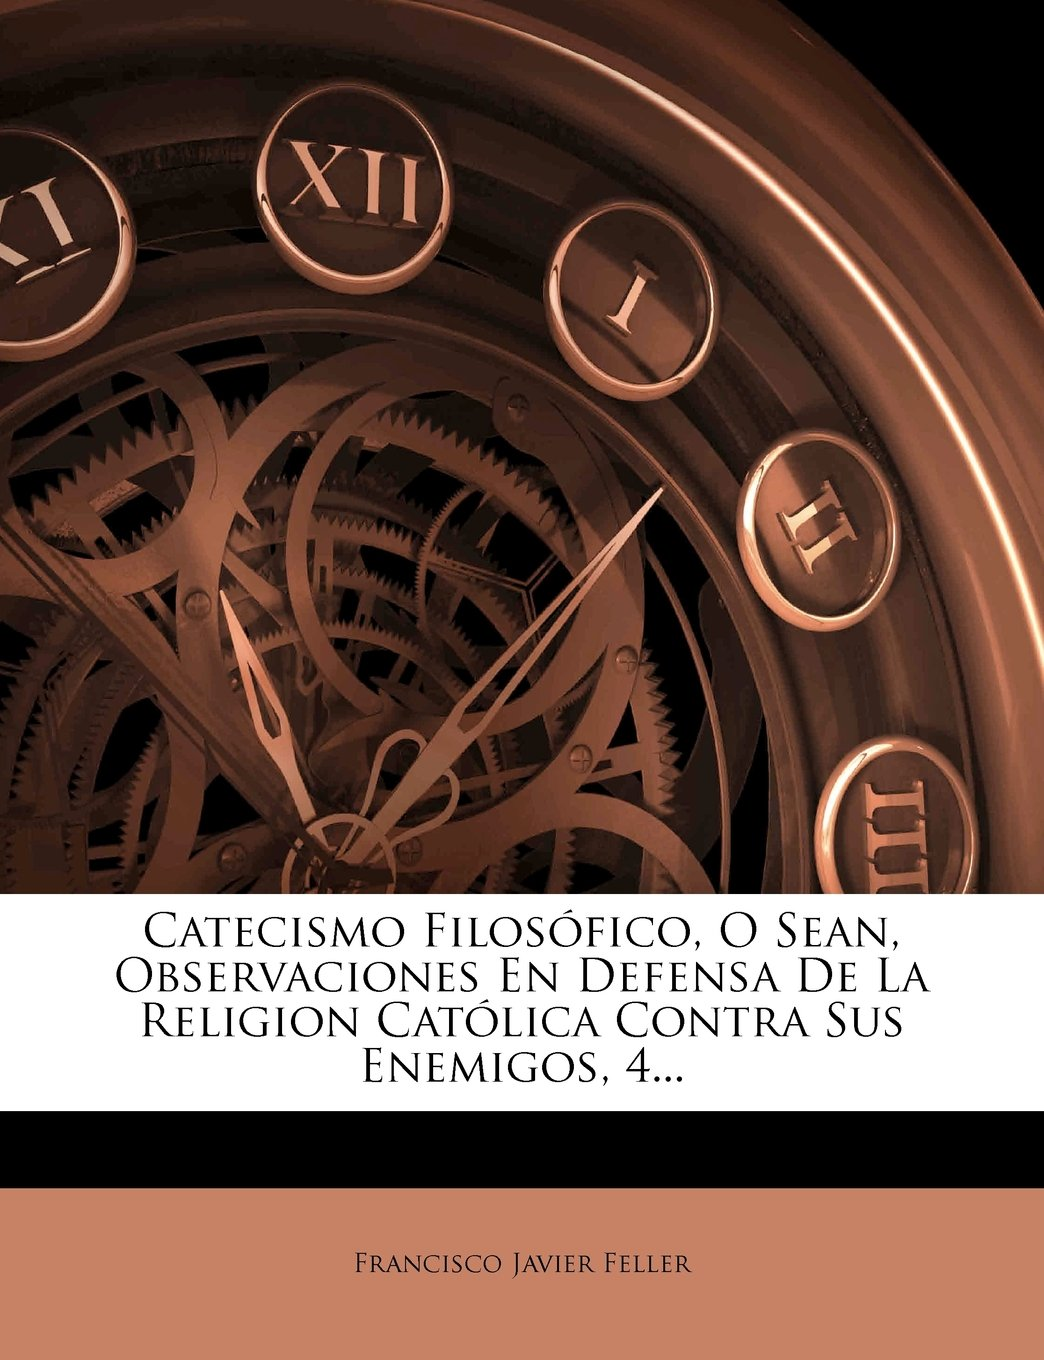 Catecismo Filos Fico, O Sean, Observaciones En Defensa de La Religion Cat Lica Contra Sus Enemigos, 4... (Spanish Edition) pdf epub